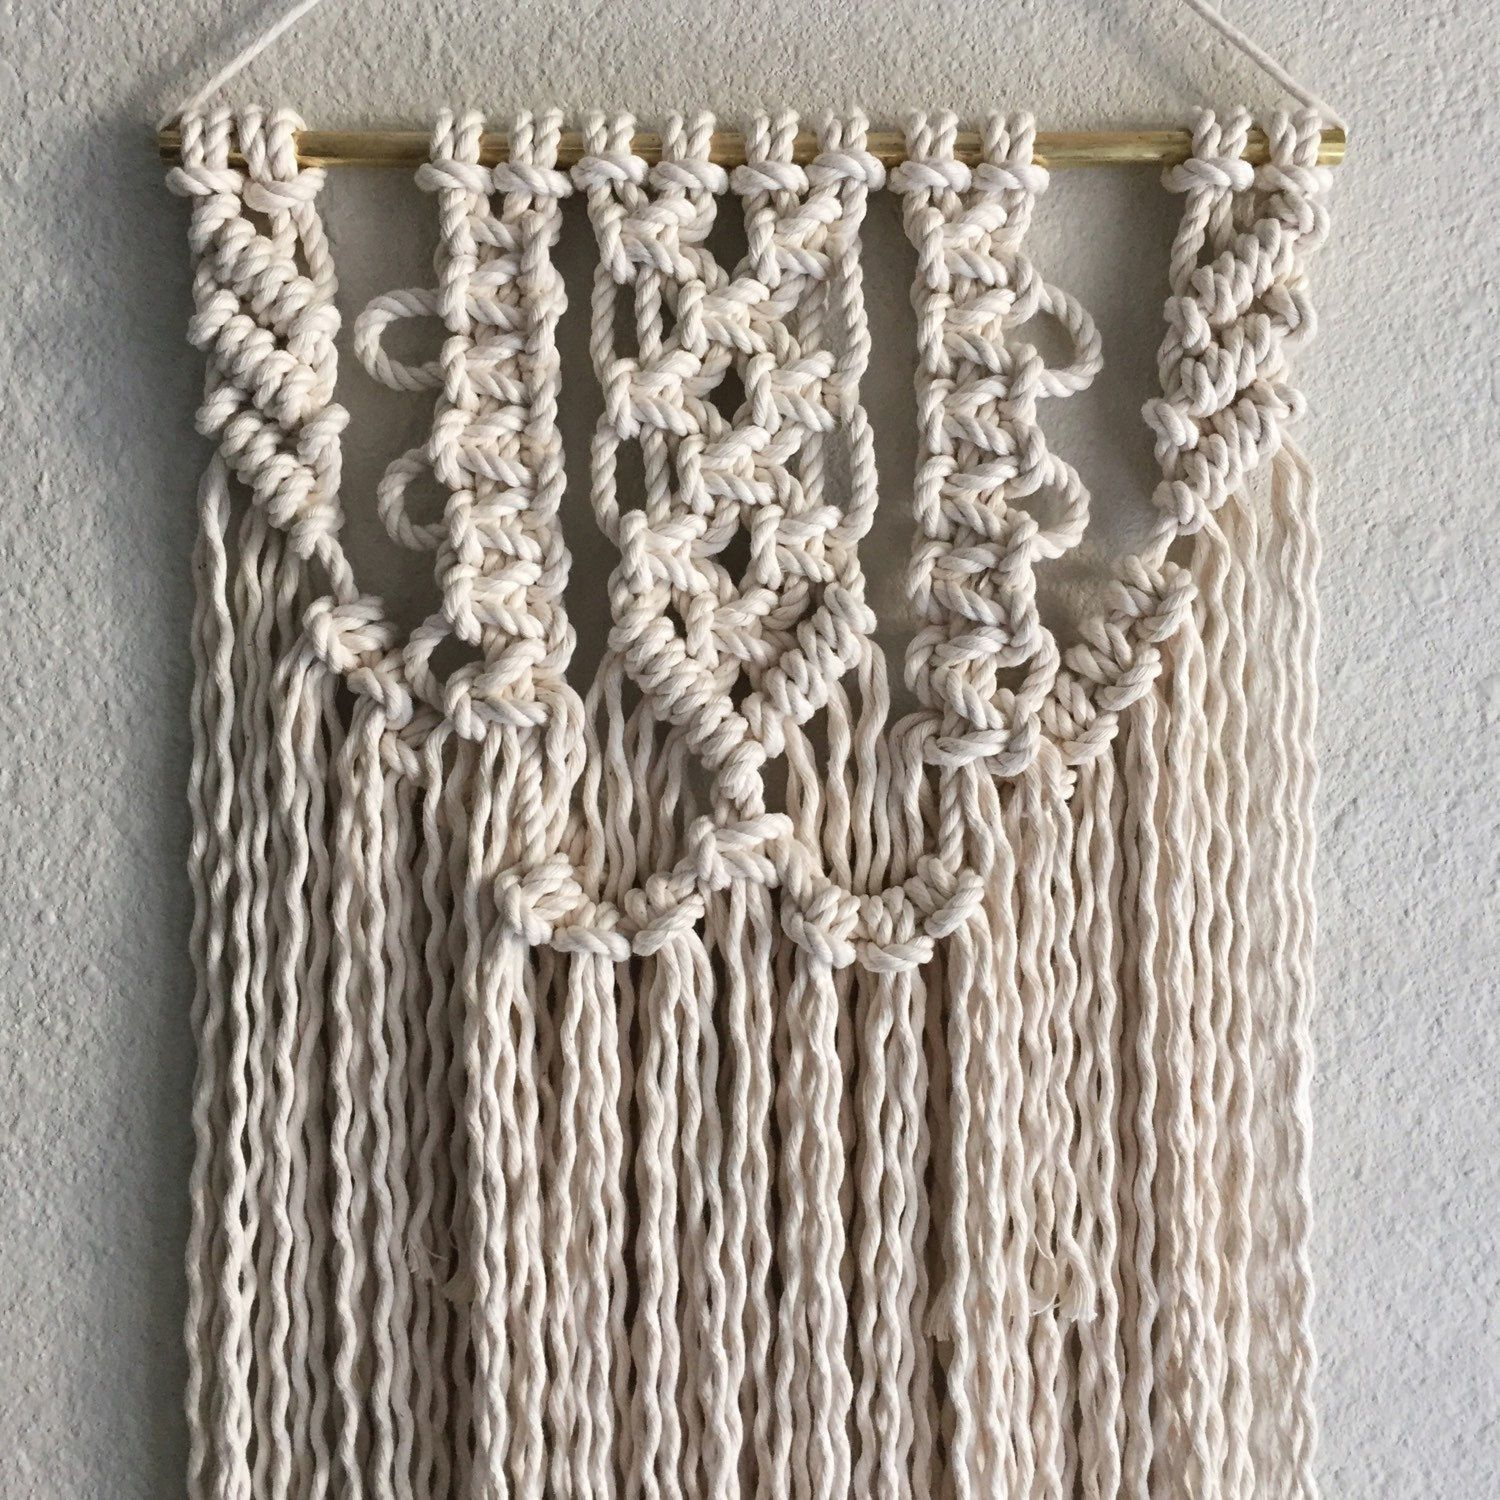 New Macrame Wall Hanging Pattern available now